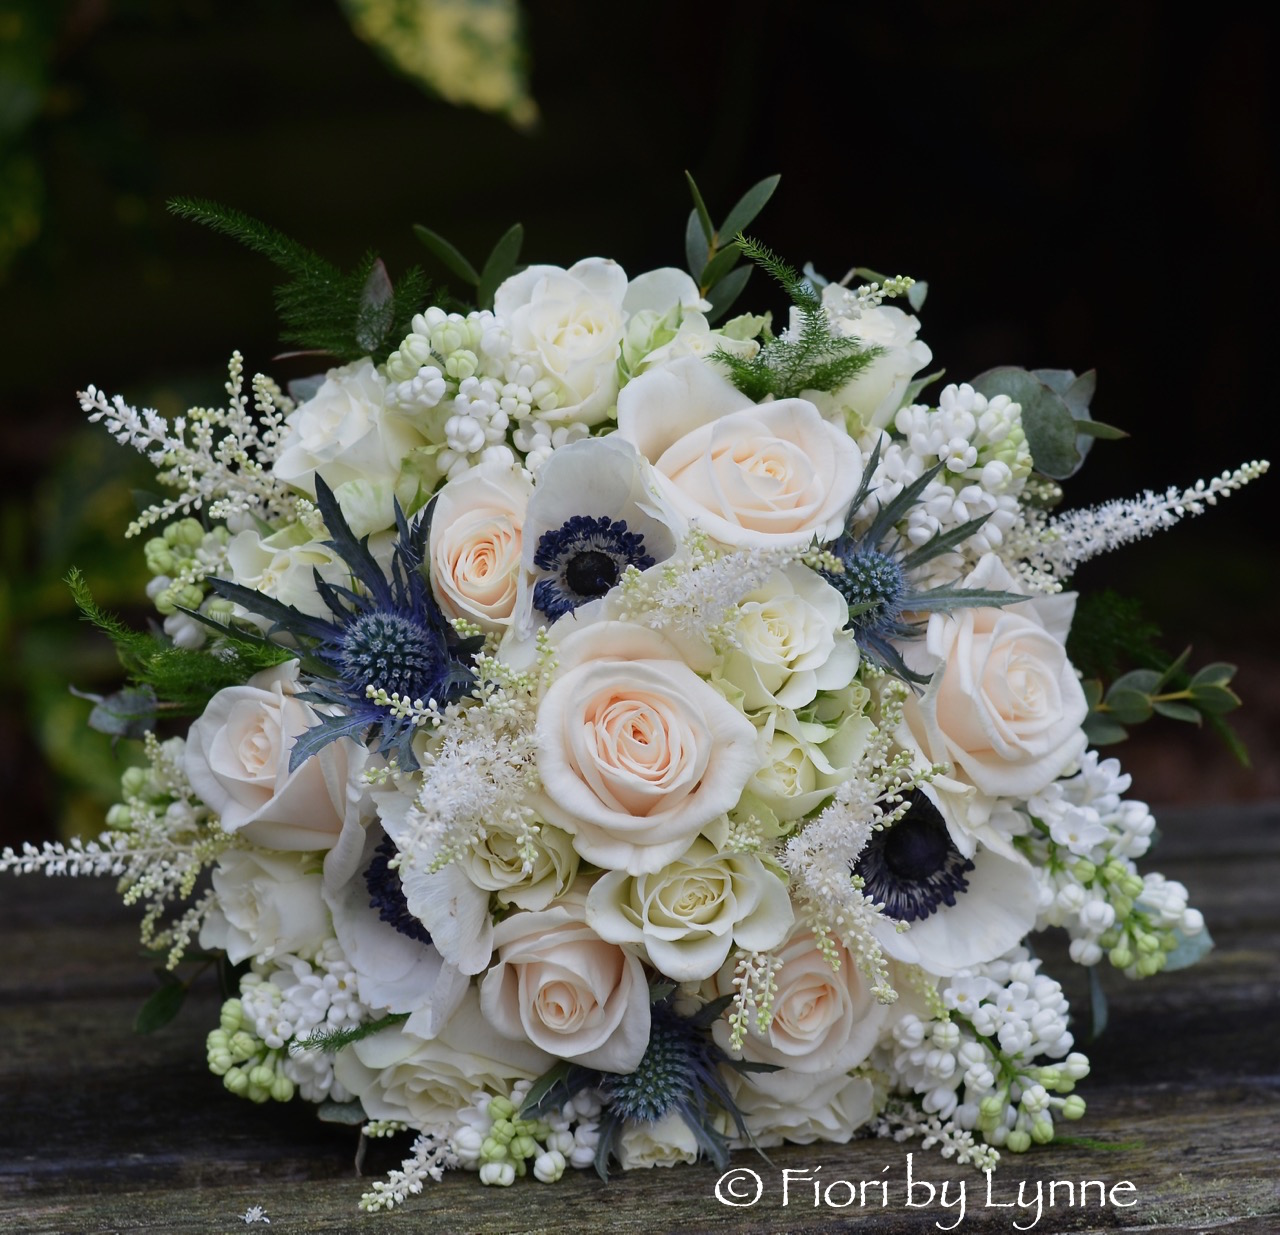 Wedding Flowers Blog: Sheryl's Wedding Flowers, Lainston House